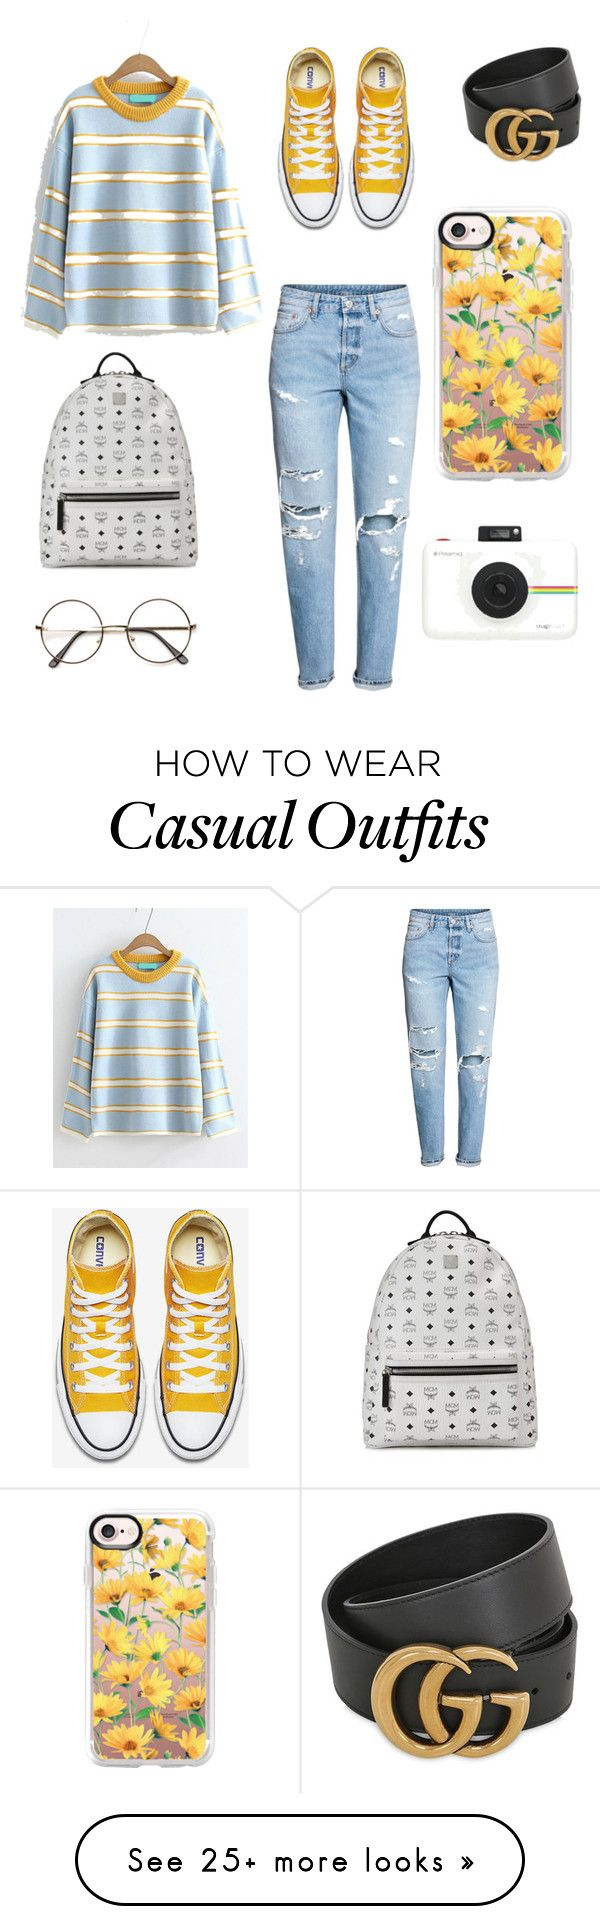 """Subtle yet casual hypebeast"" by ybuidens on Polyvore featuring H&M, MCM, Gucci, Casetify and Polaroid"